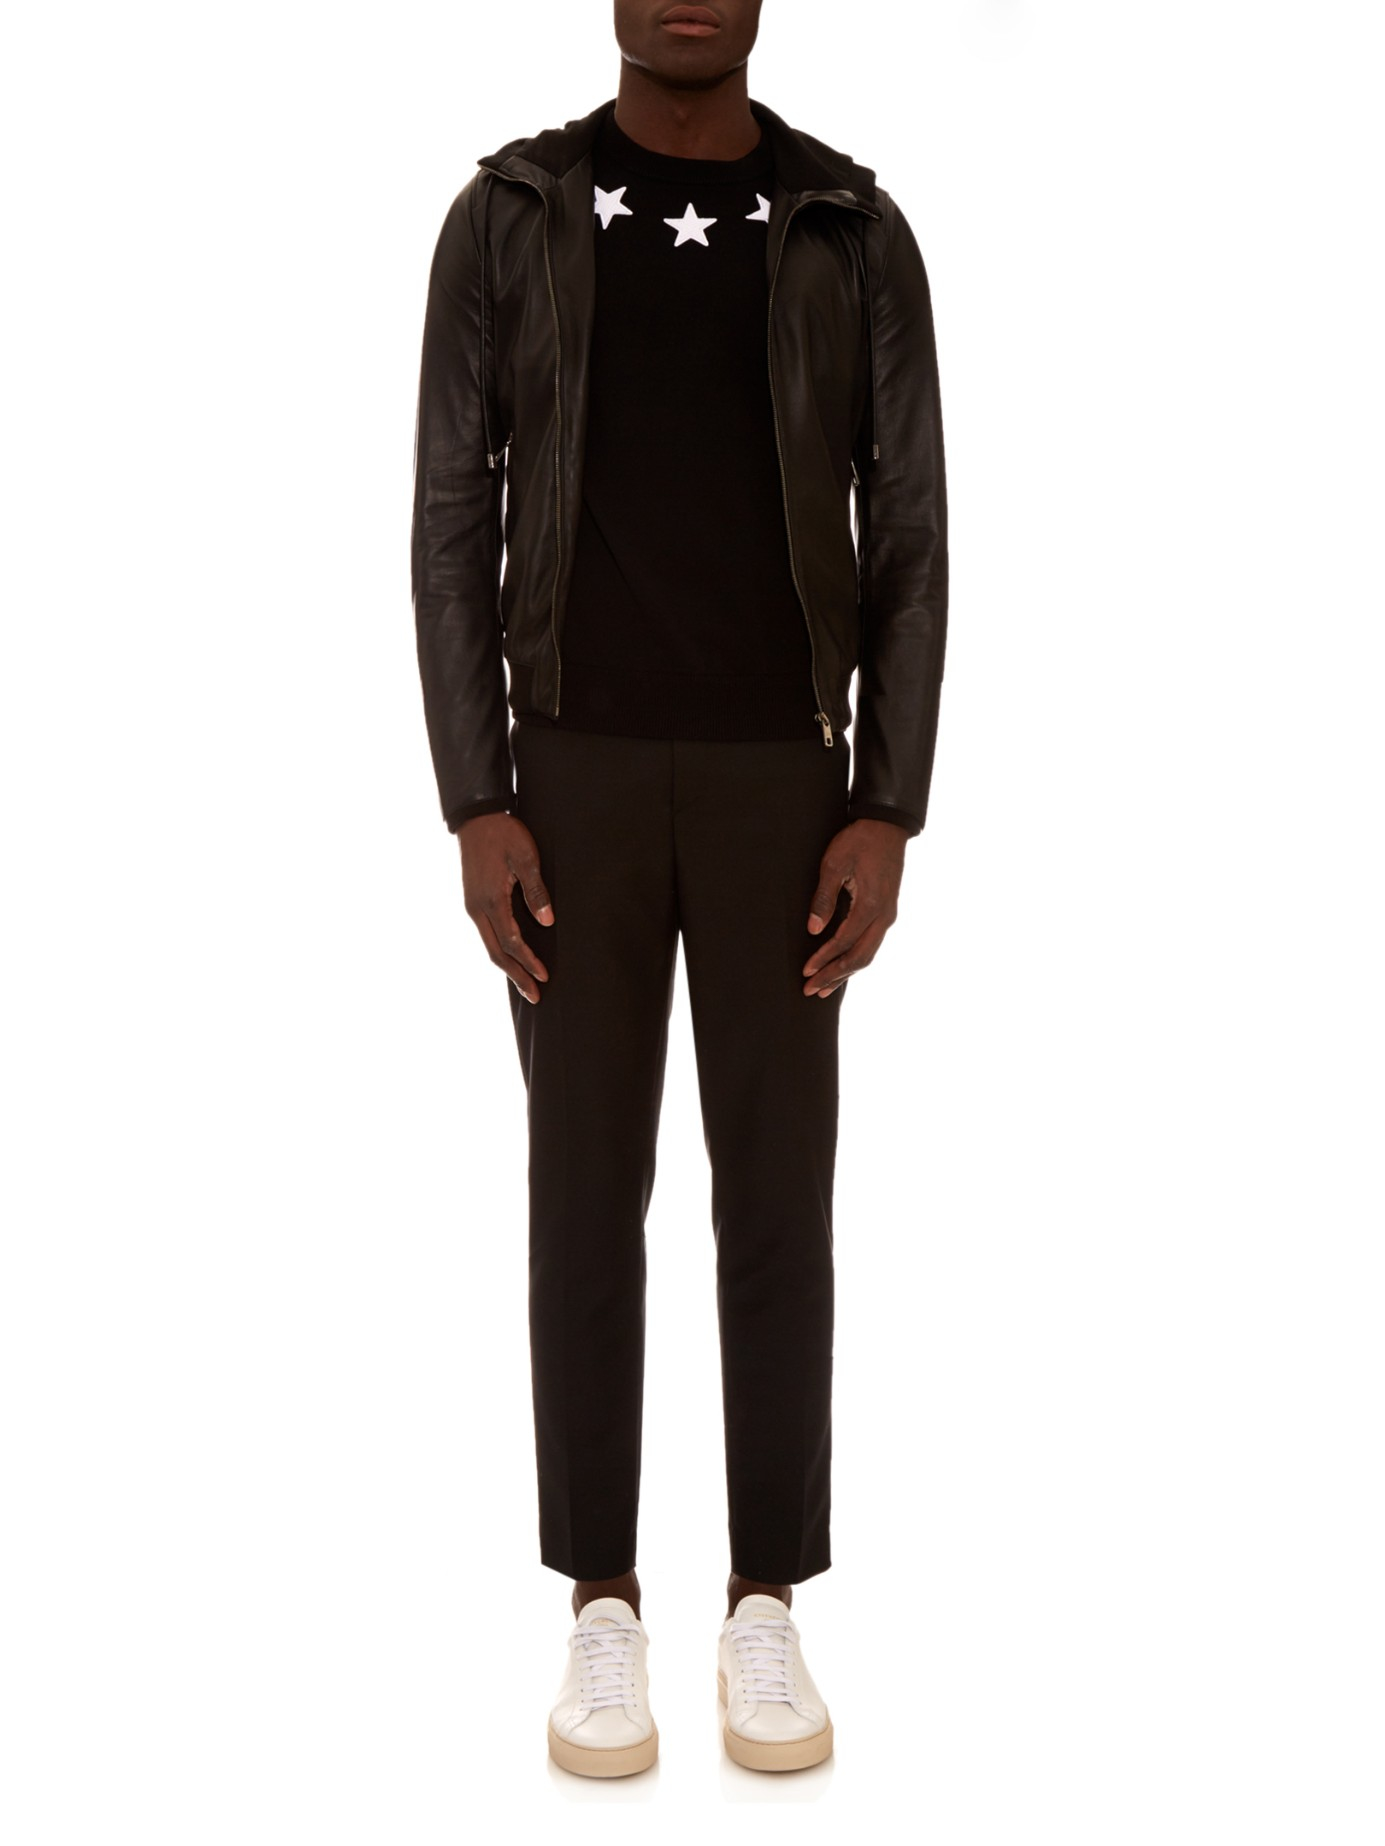 0d455409dc015 Lyst - Givenchy Cuban-fit Star Appliqué Sweater in Black for Men